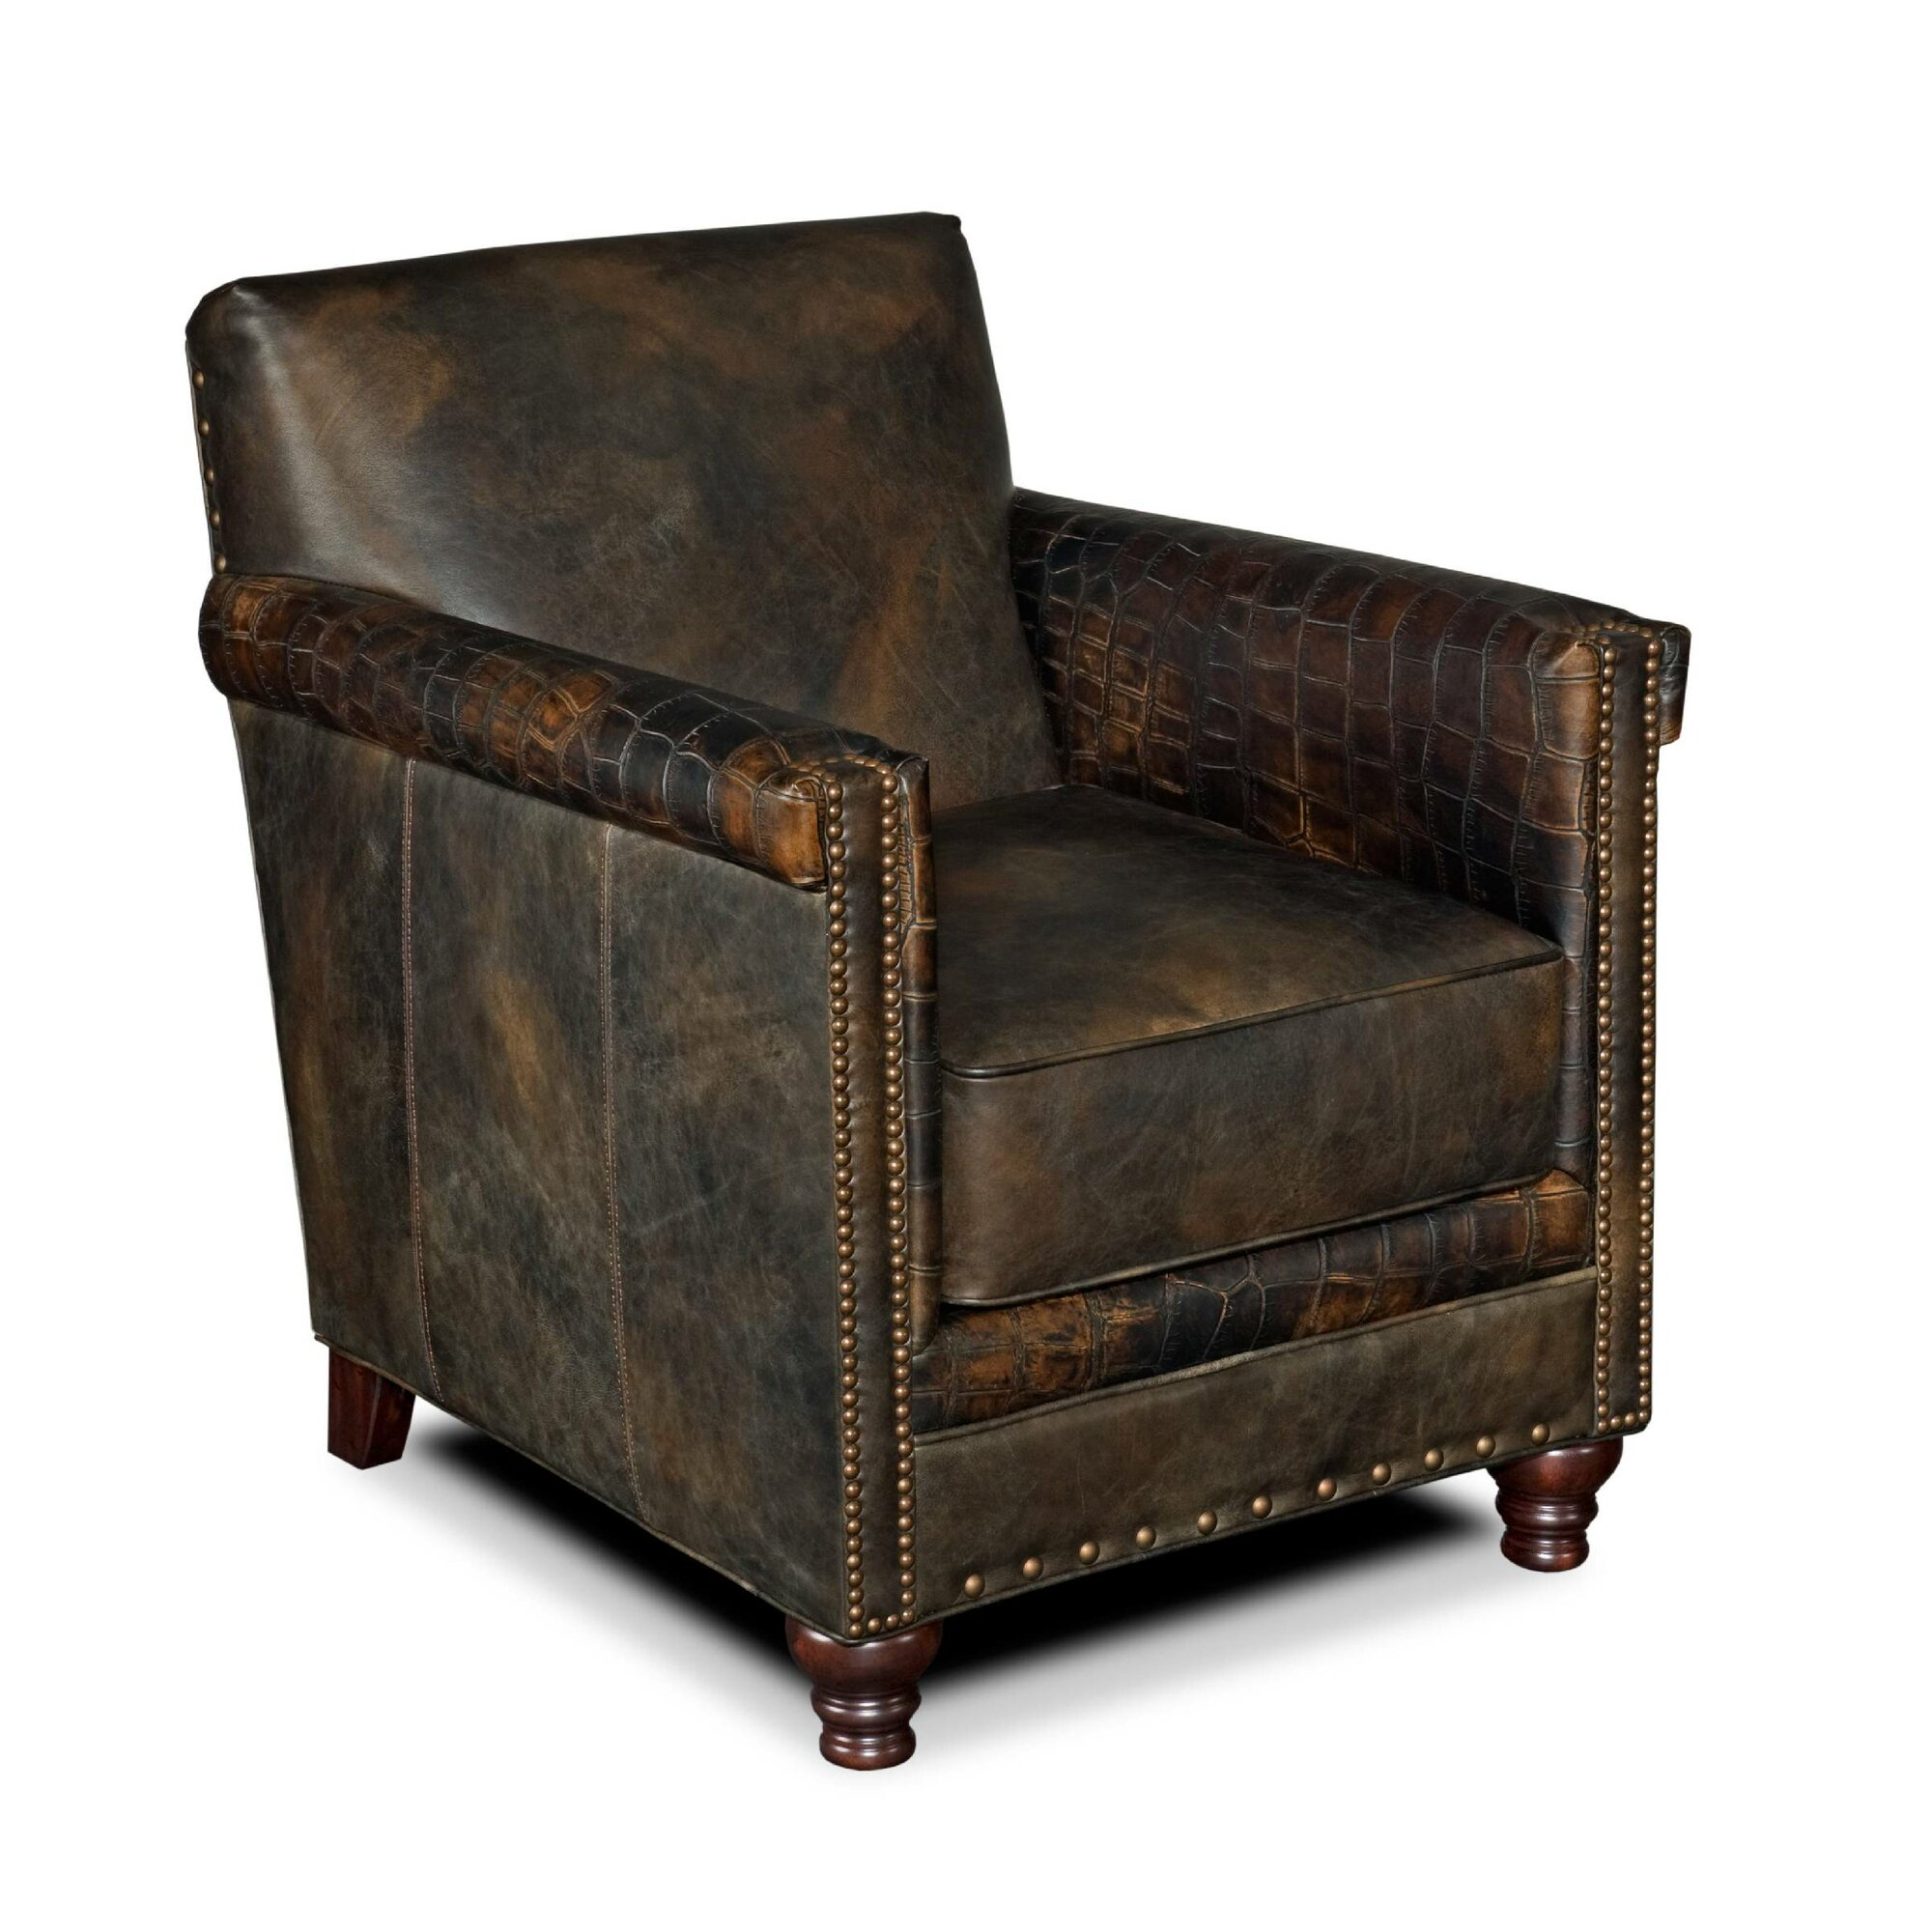 Comfortable arm chairs - Arm Chair